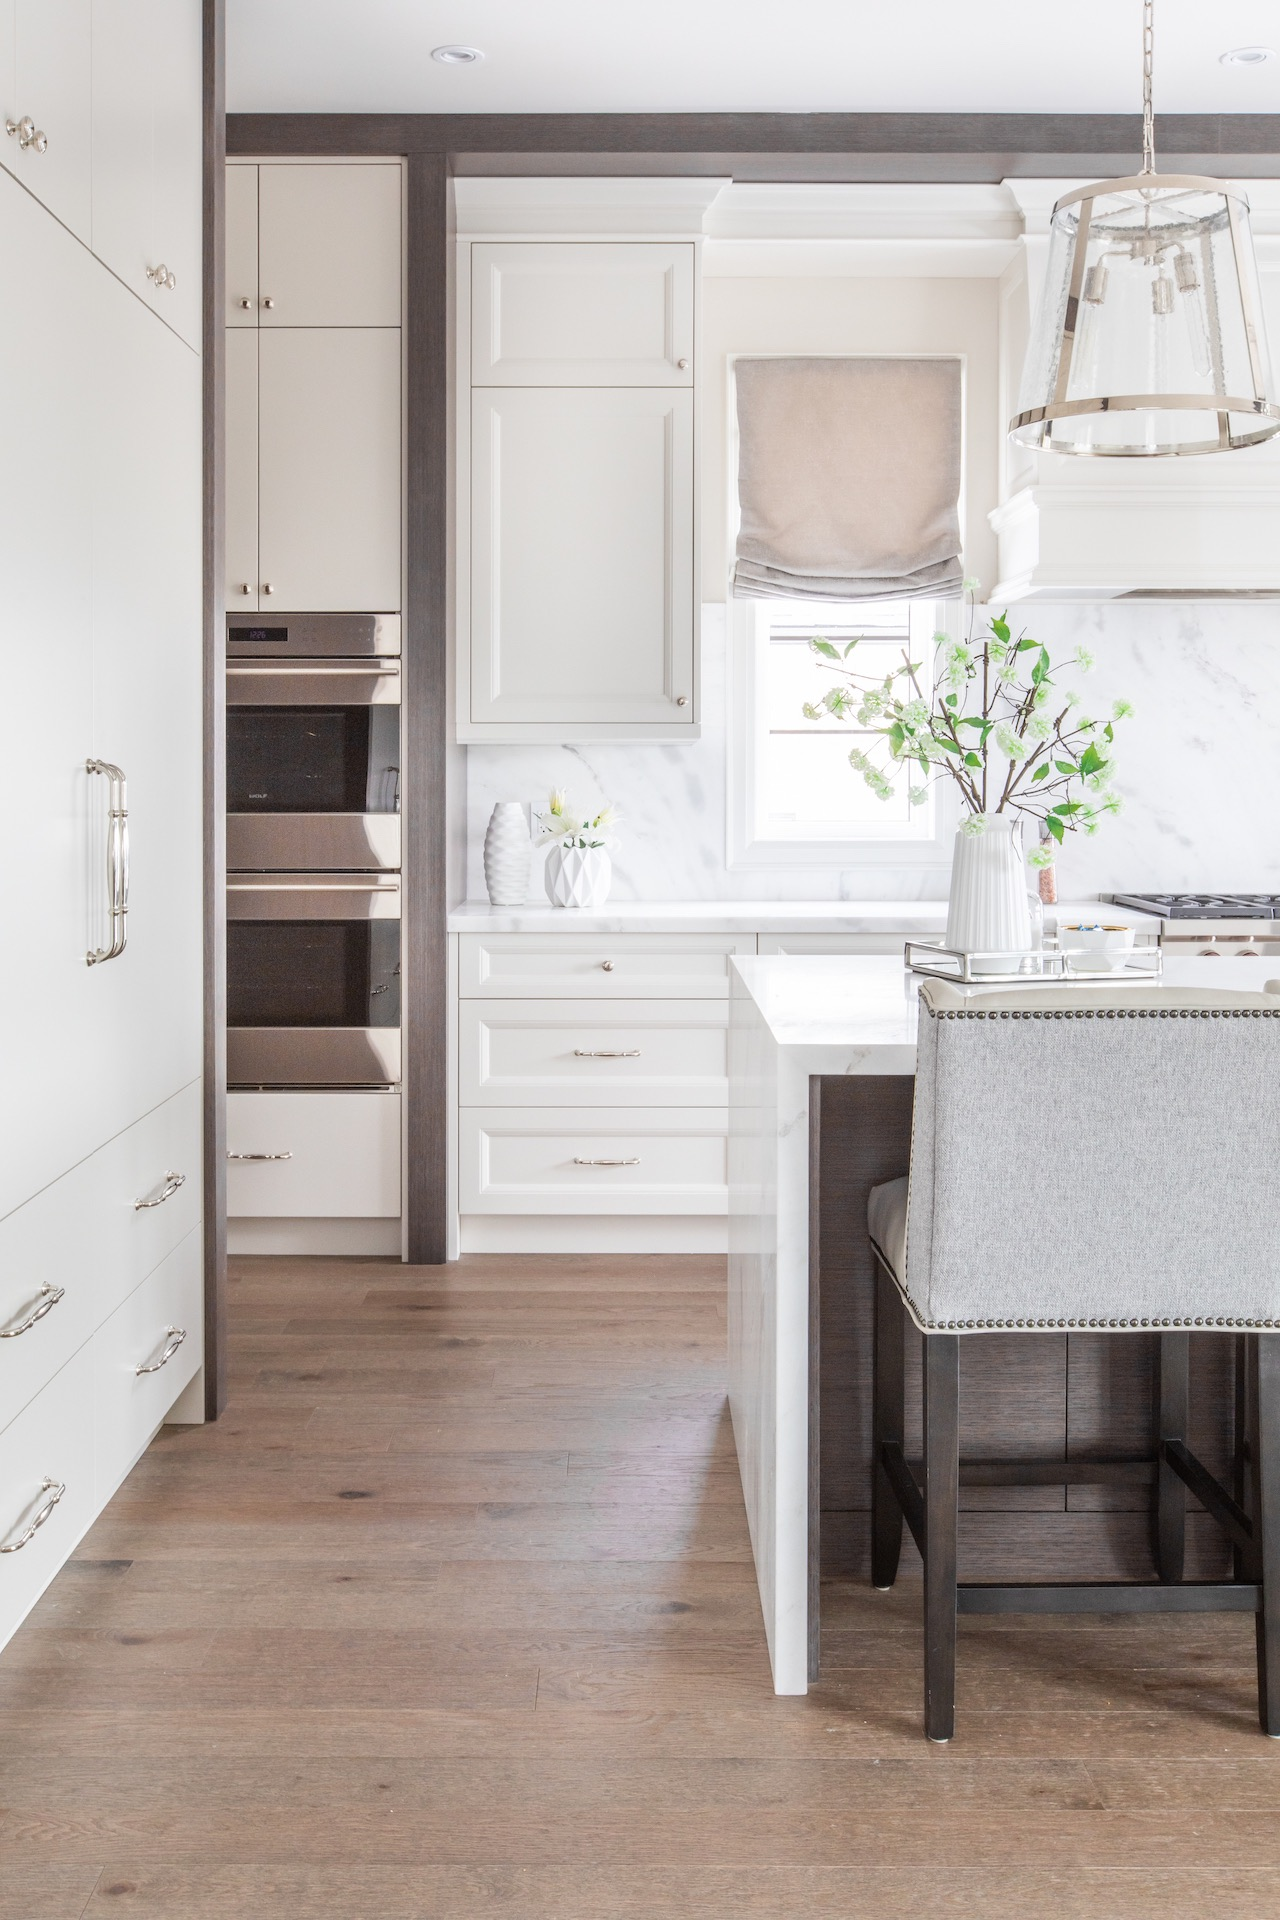 White kitchen with oven in cabinets and bar stool